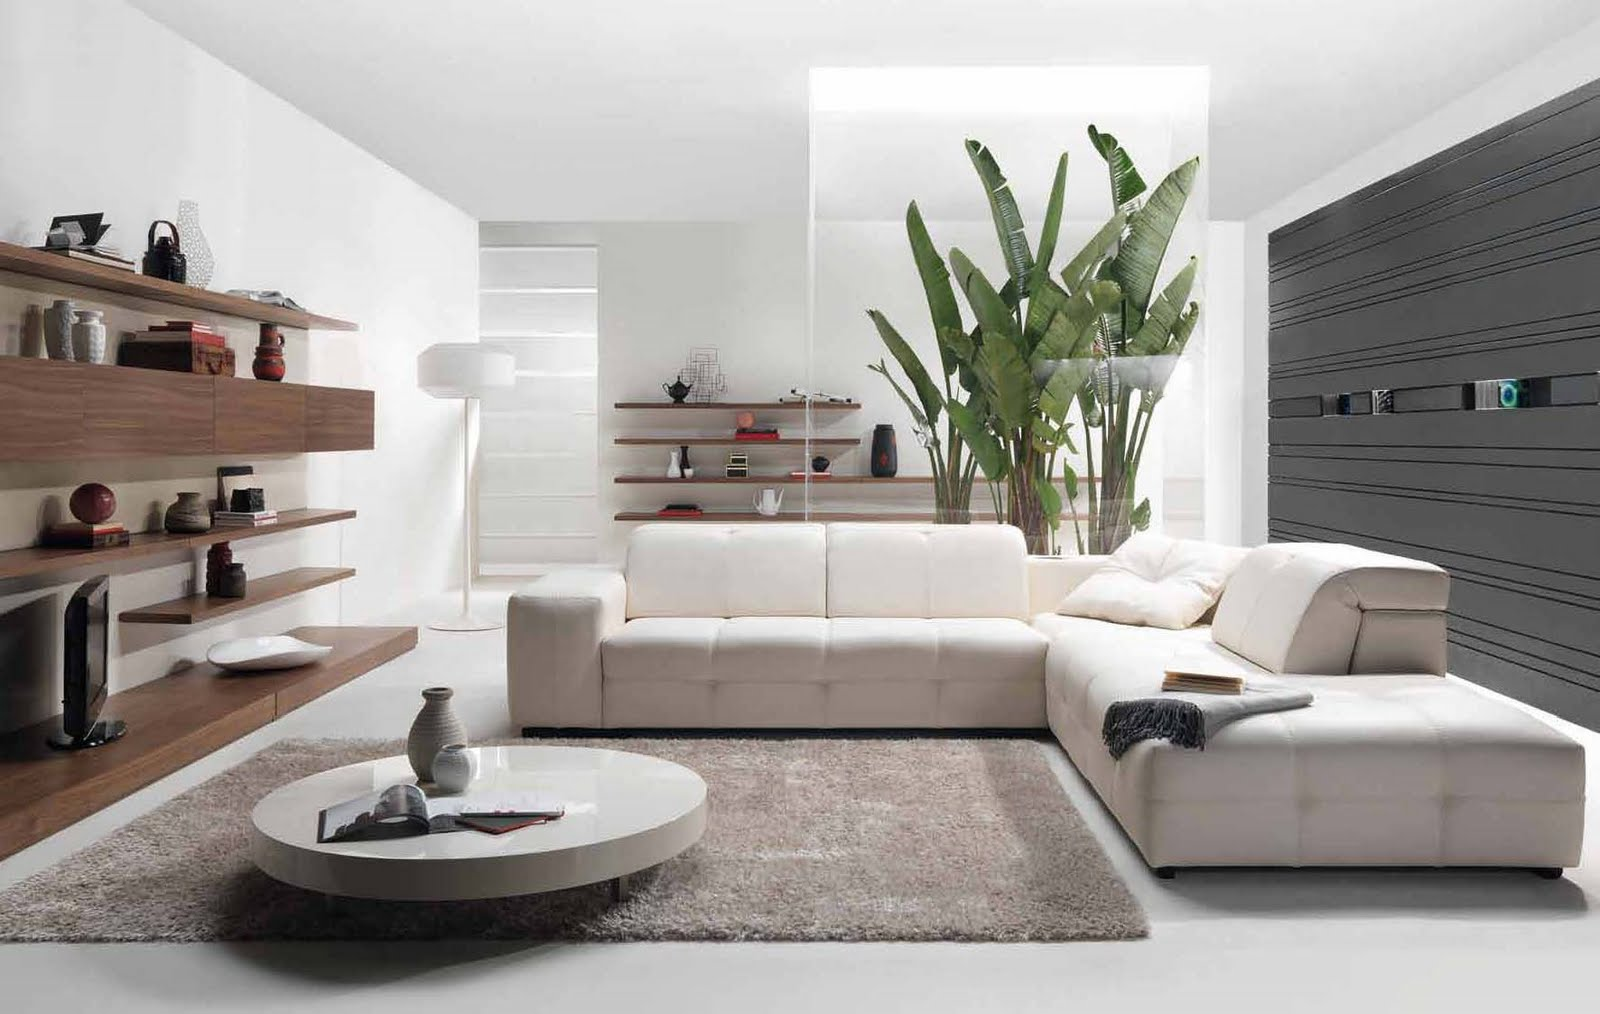 Future house design modern living room interior design for House living room interior design